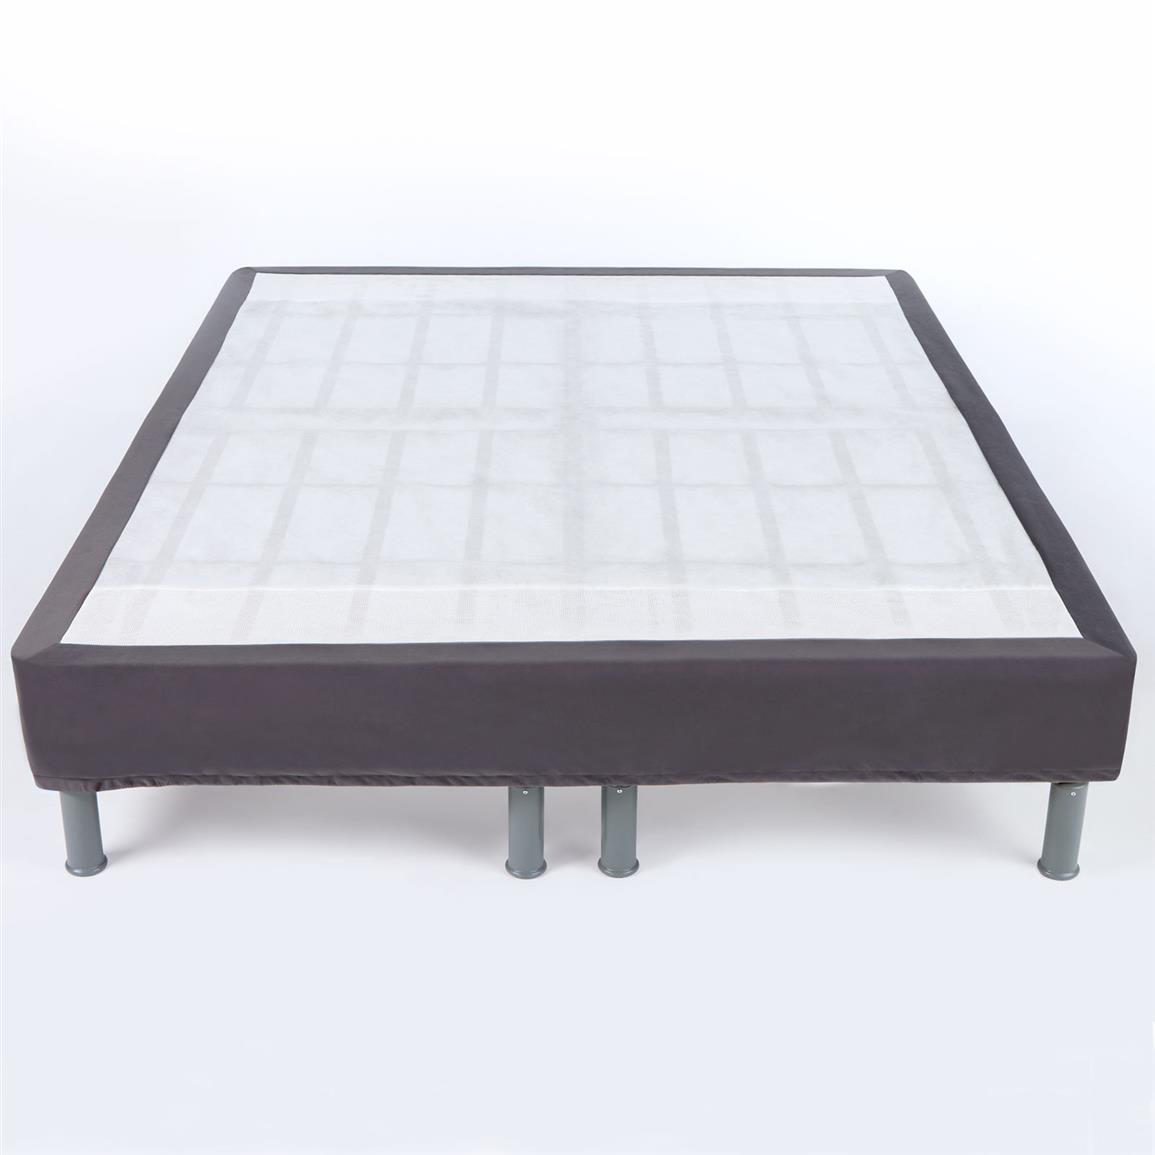 Quilted cover that emulates a box spring